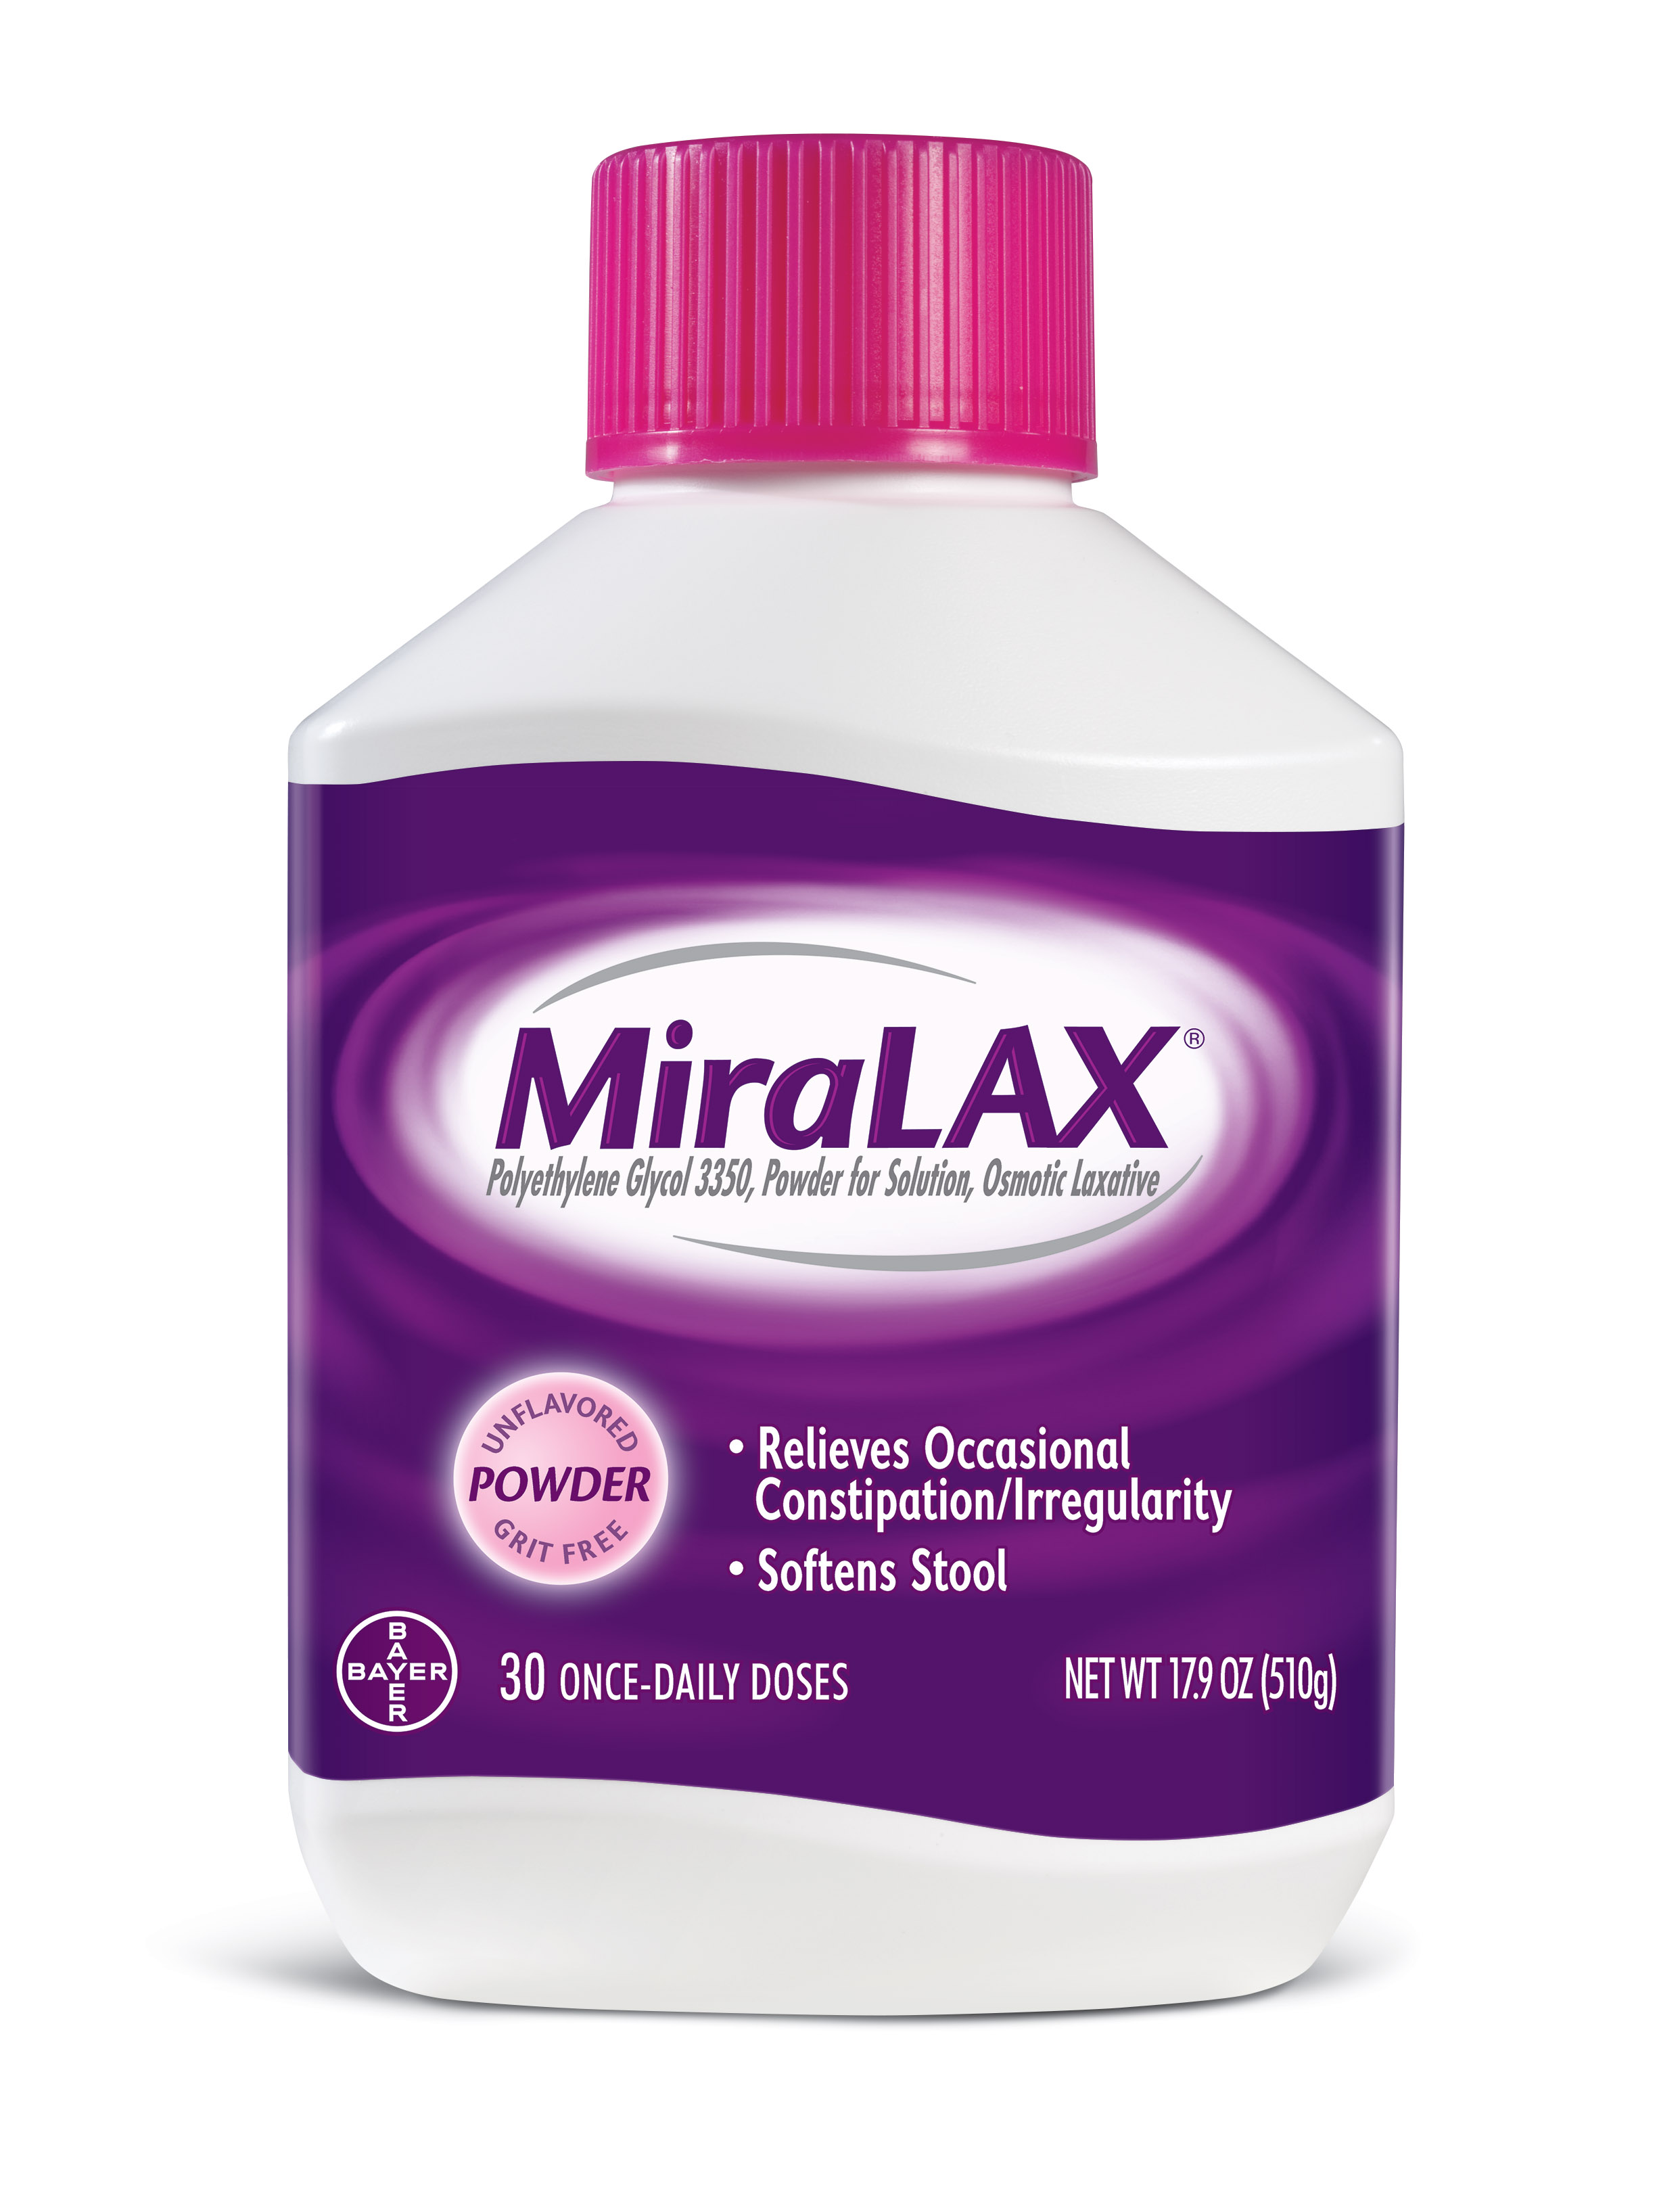 photograph regarding Miralax Printable Coupon called MiraLAX Polyethylene Glycol 3350 Powder Laxative, 17.9 Oz, 30 Dose